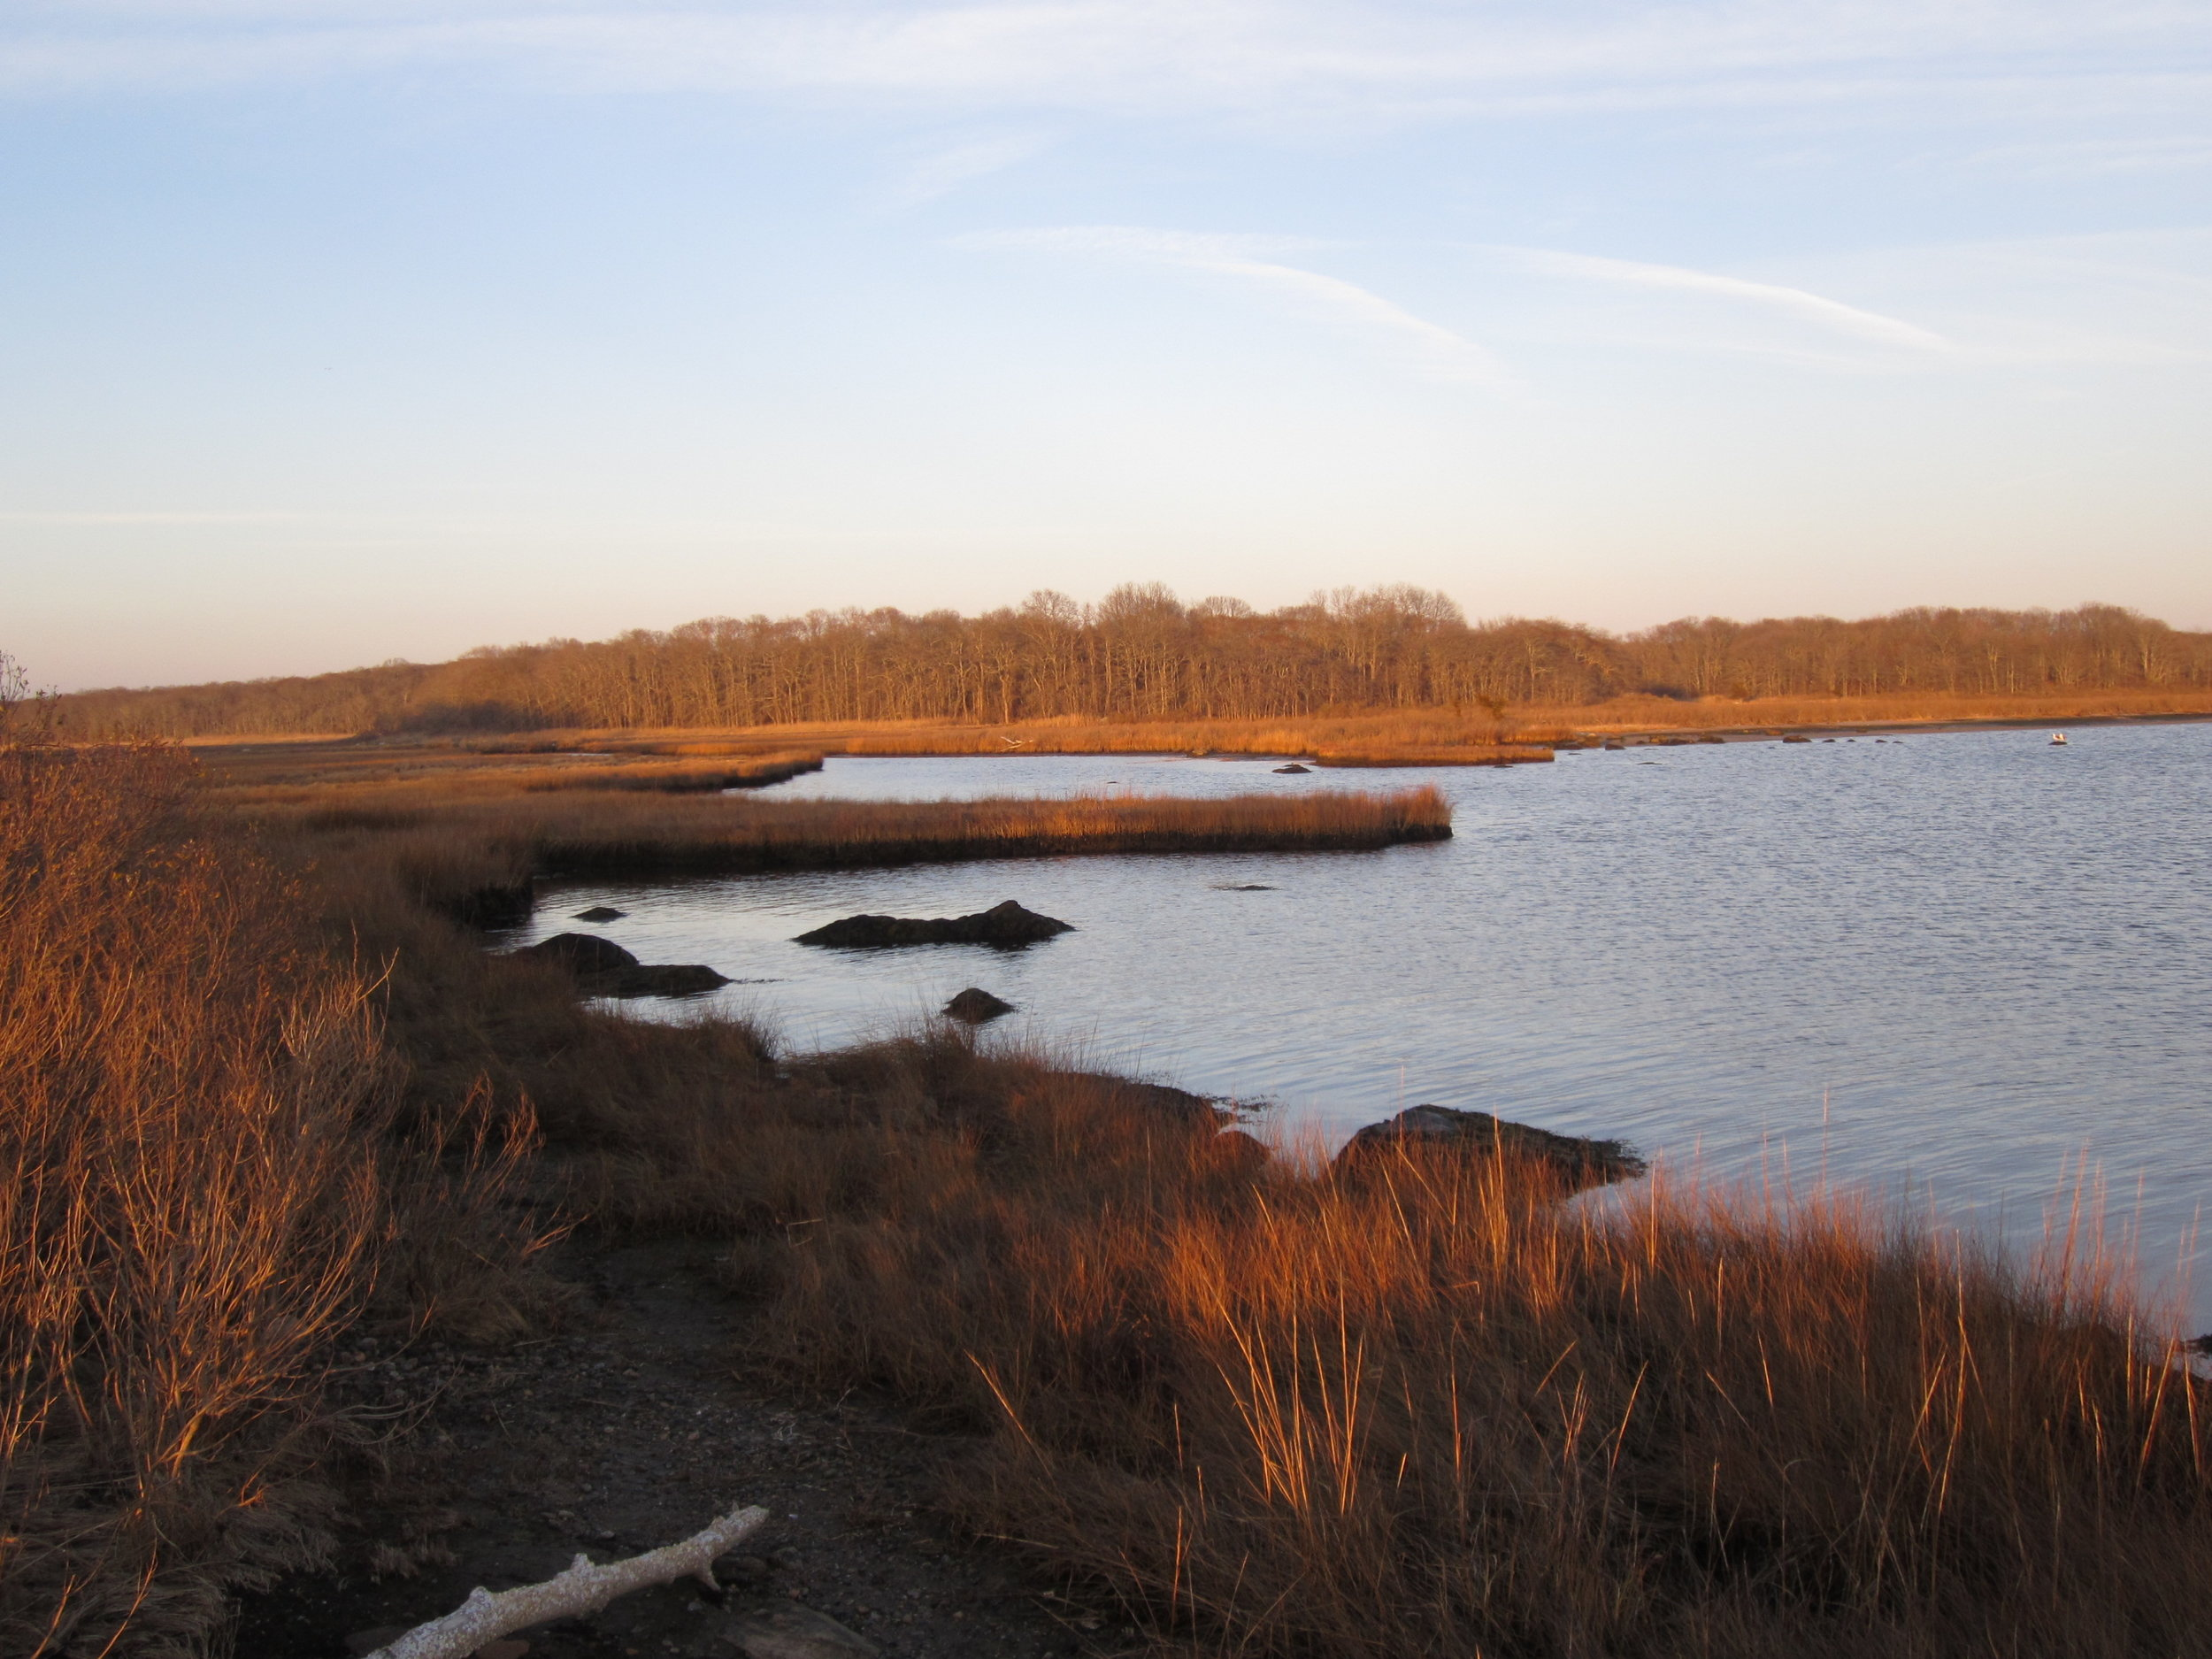 barn island tidal marsh photo: S. Simm